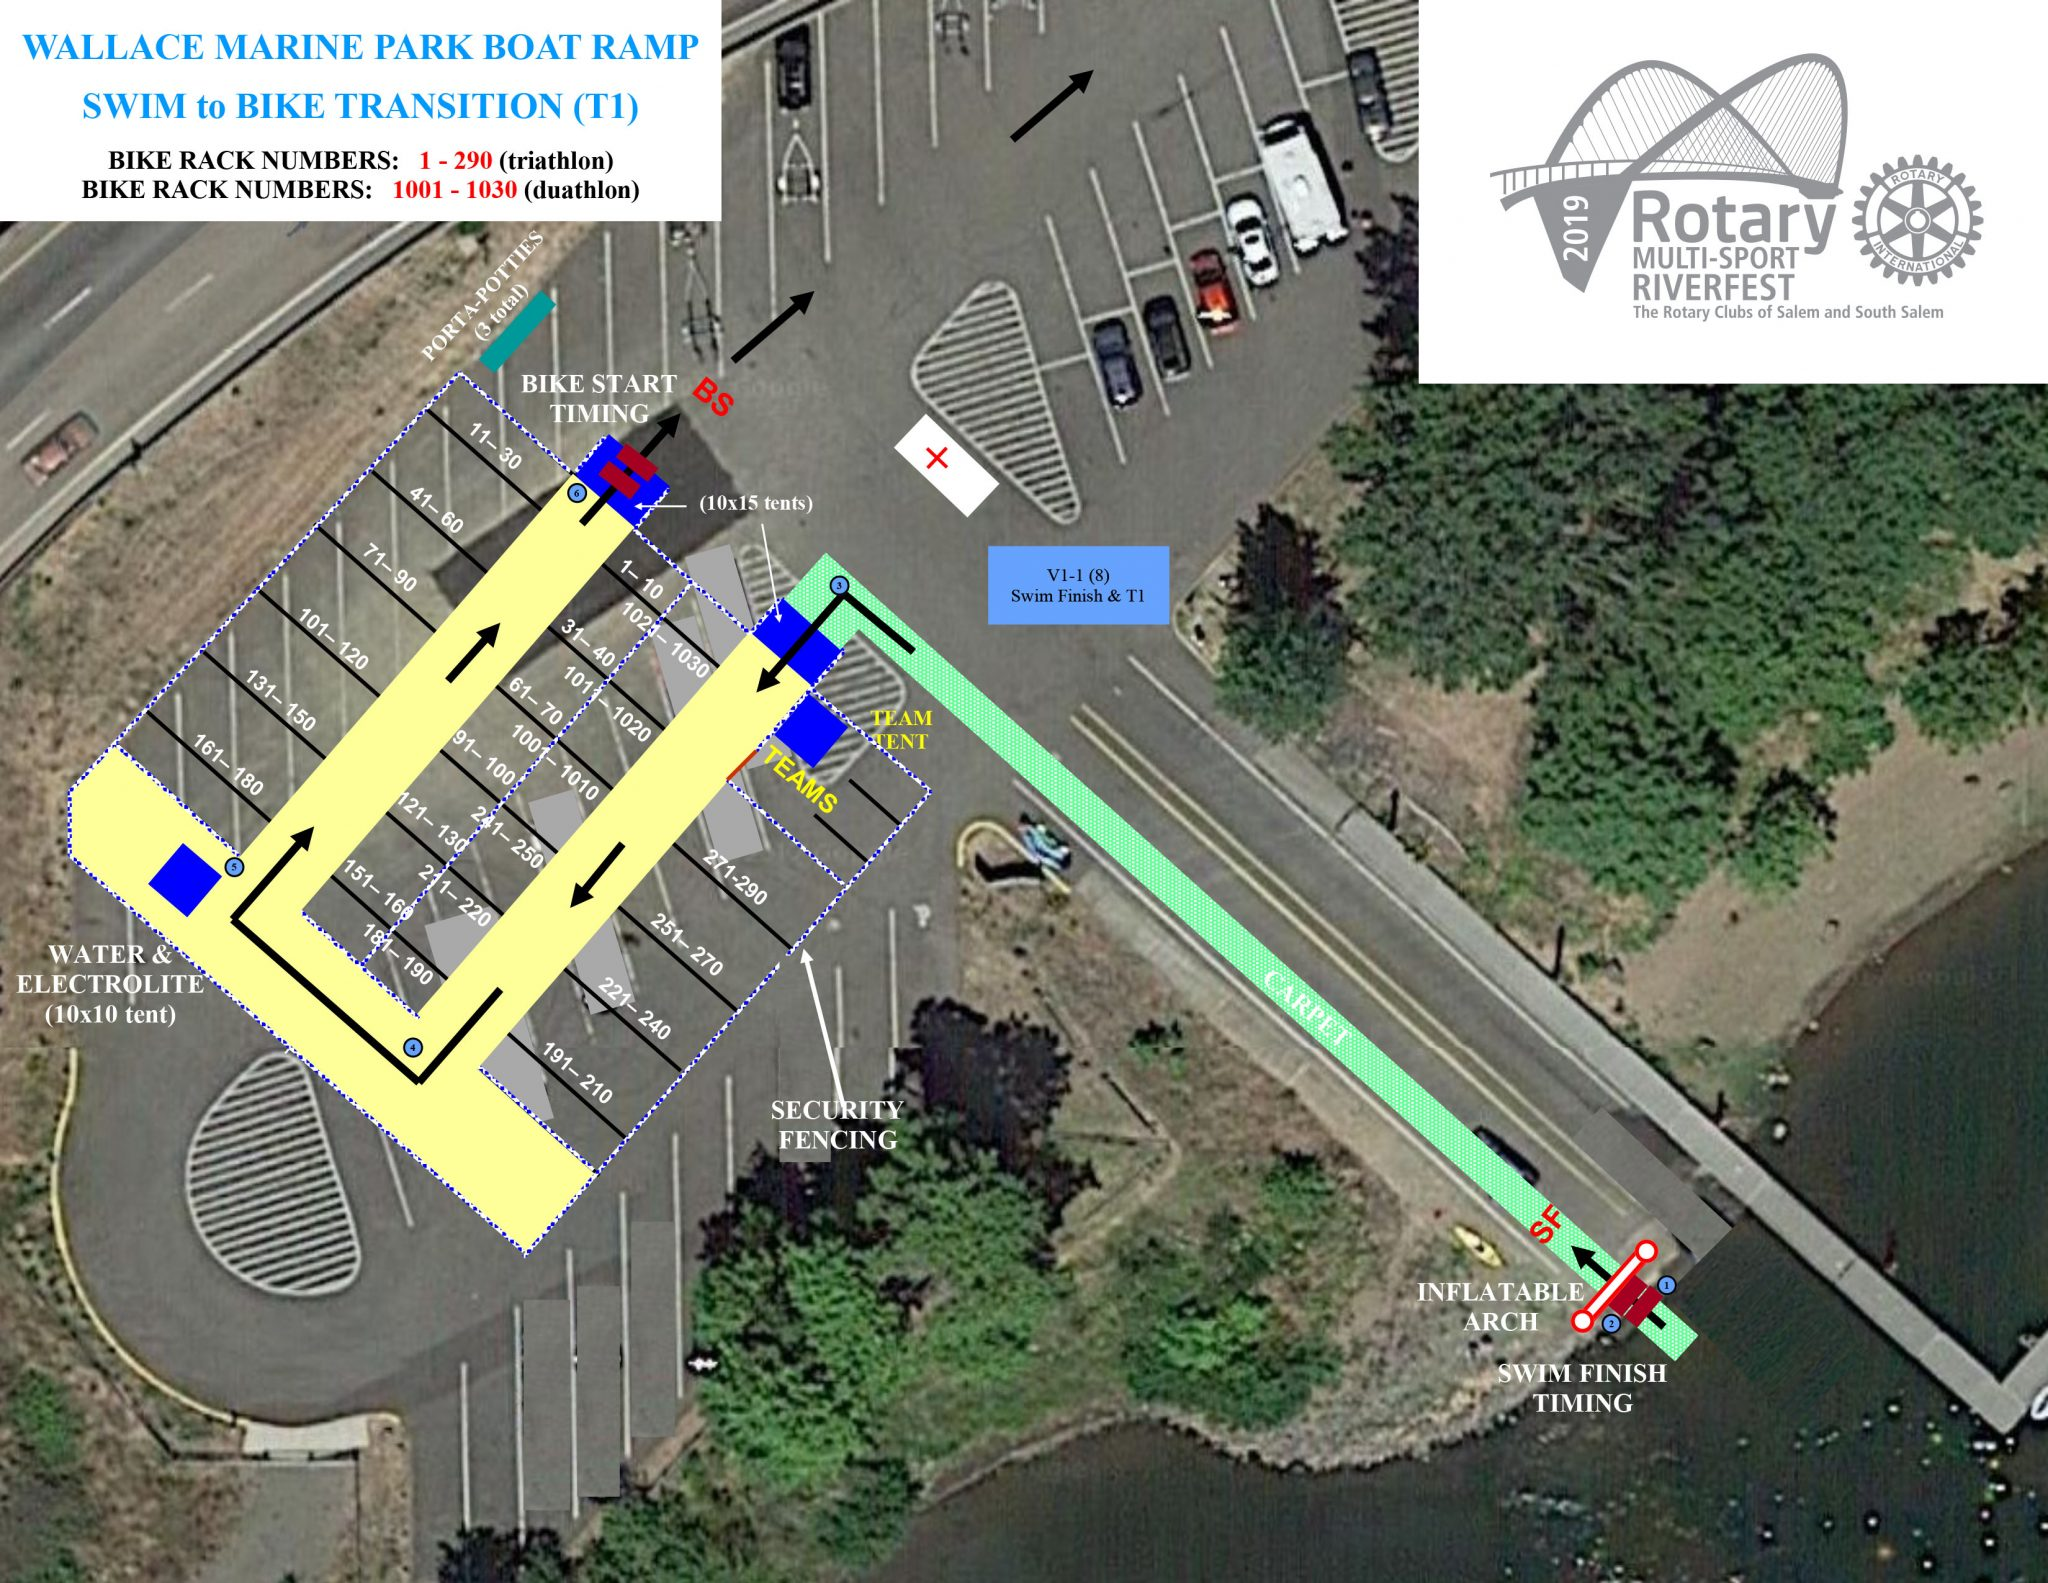 T1 - Wallace Marine Park - Swim to Bike Transition (T1)